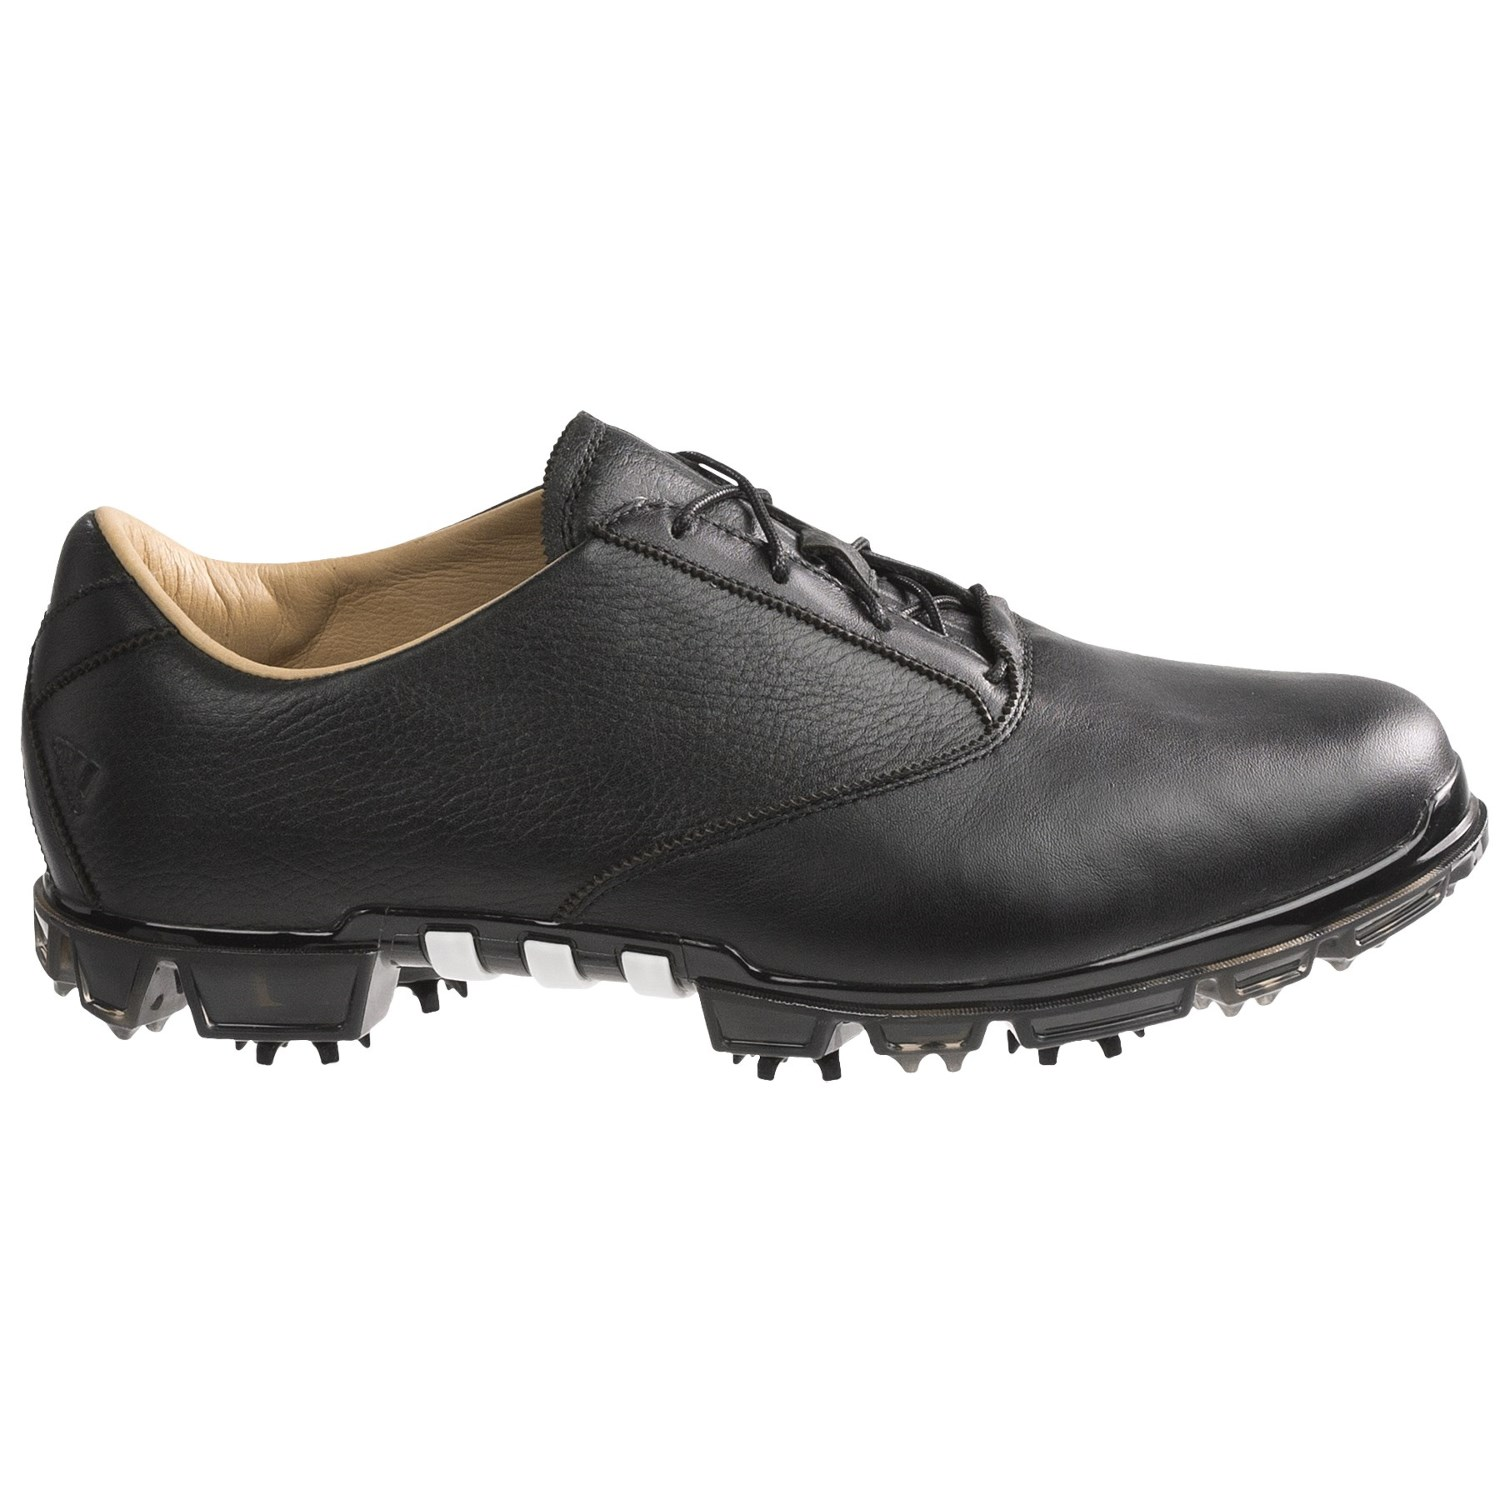 finest selection be92e 72965 ... adidas adipure motion mens golf ...